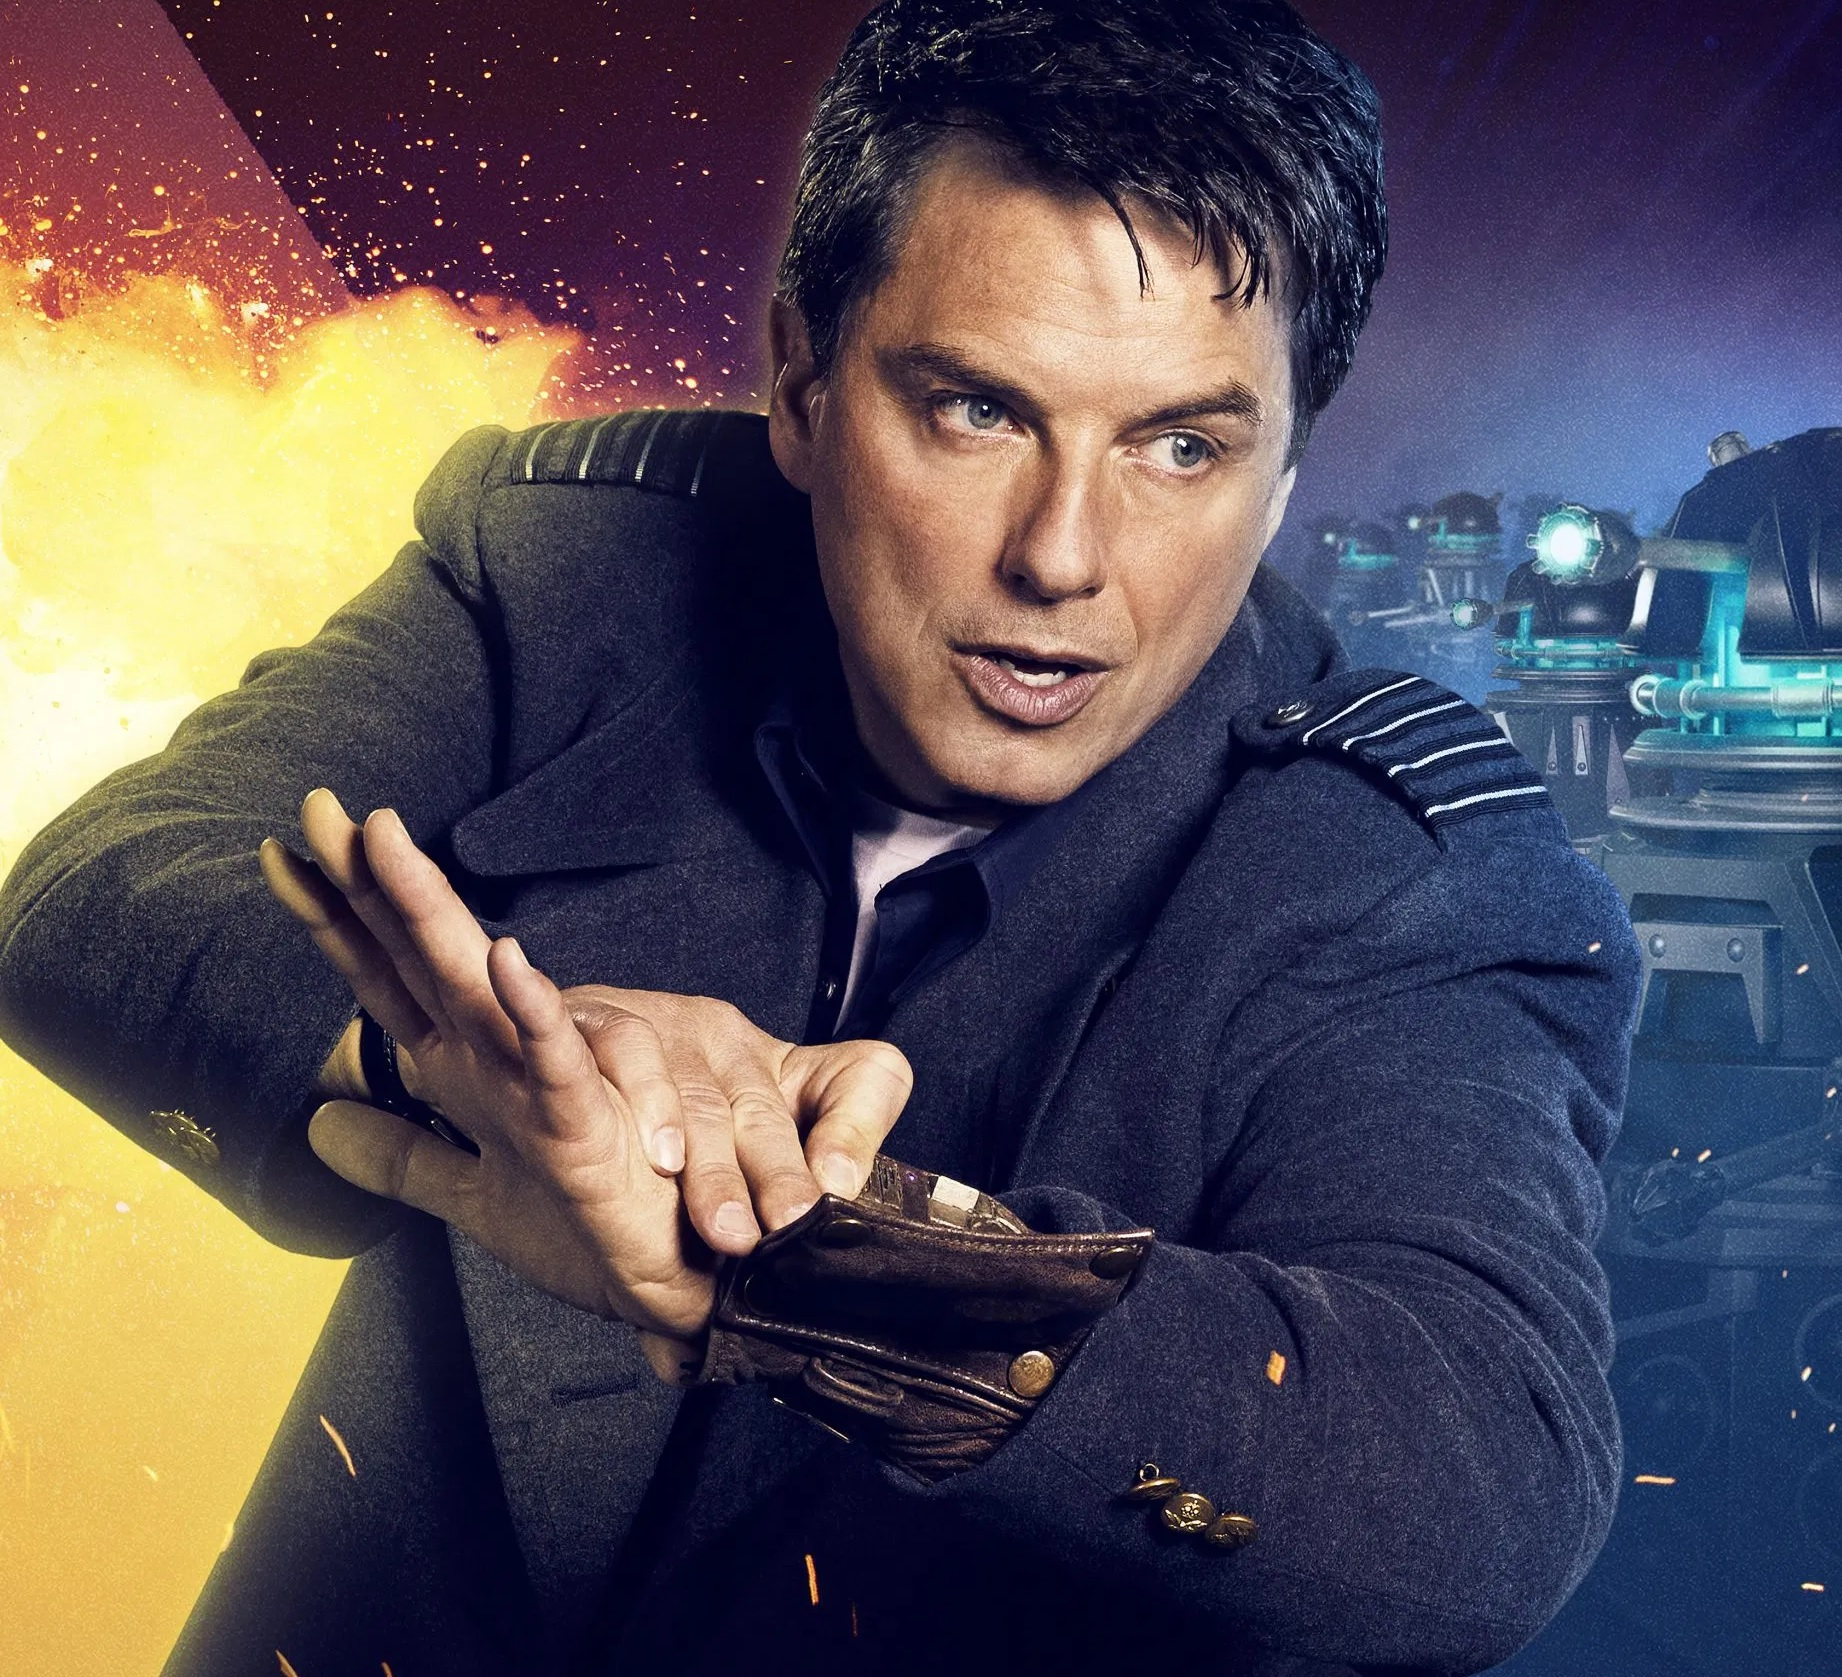 The Doctor, Captain Jack Harkness, and Captain Scarlet: How to Make Immortality Interesting